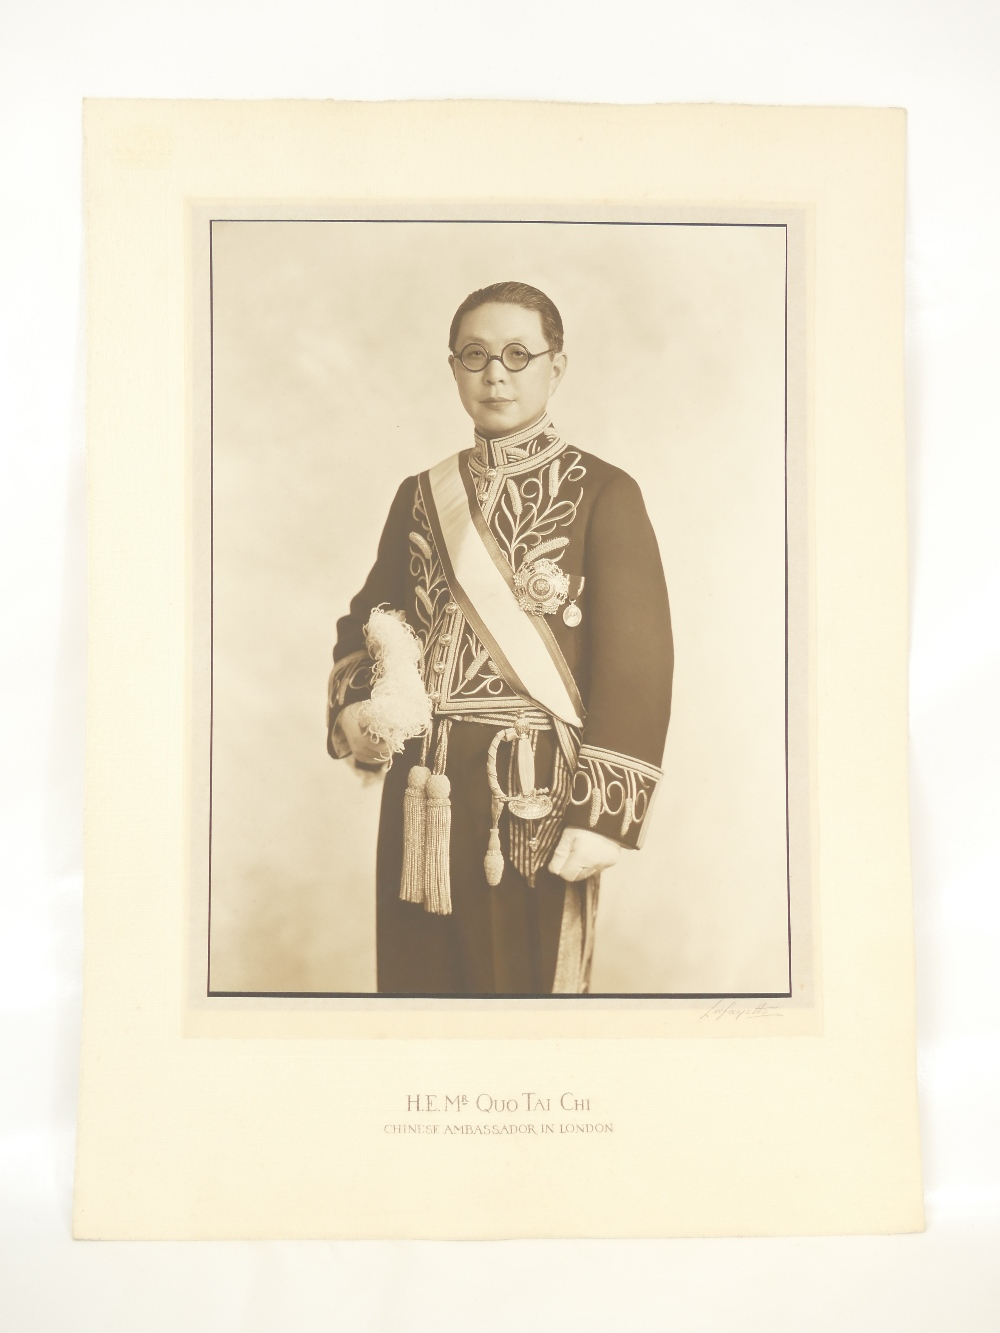 Lot 14 - His Excellency Mr Quo Tai Chi - Chinese Ambassador in London 1930's - large studio portrait bearing